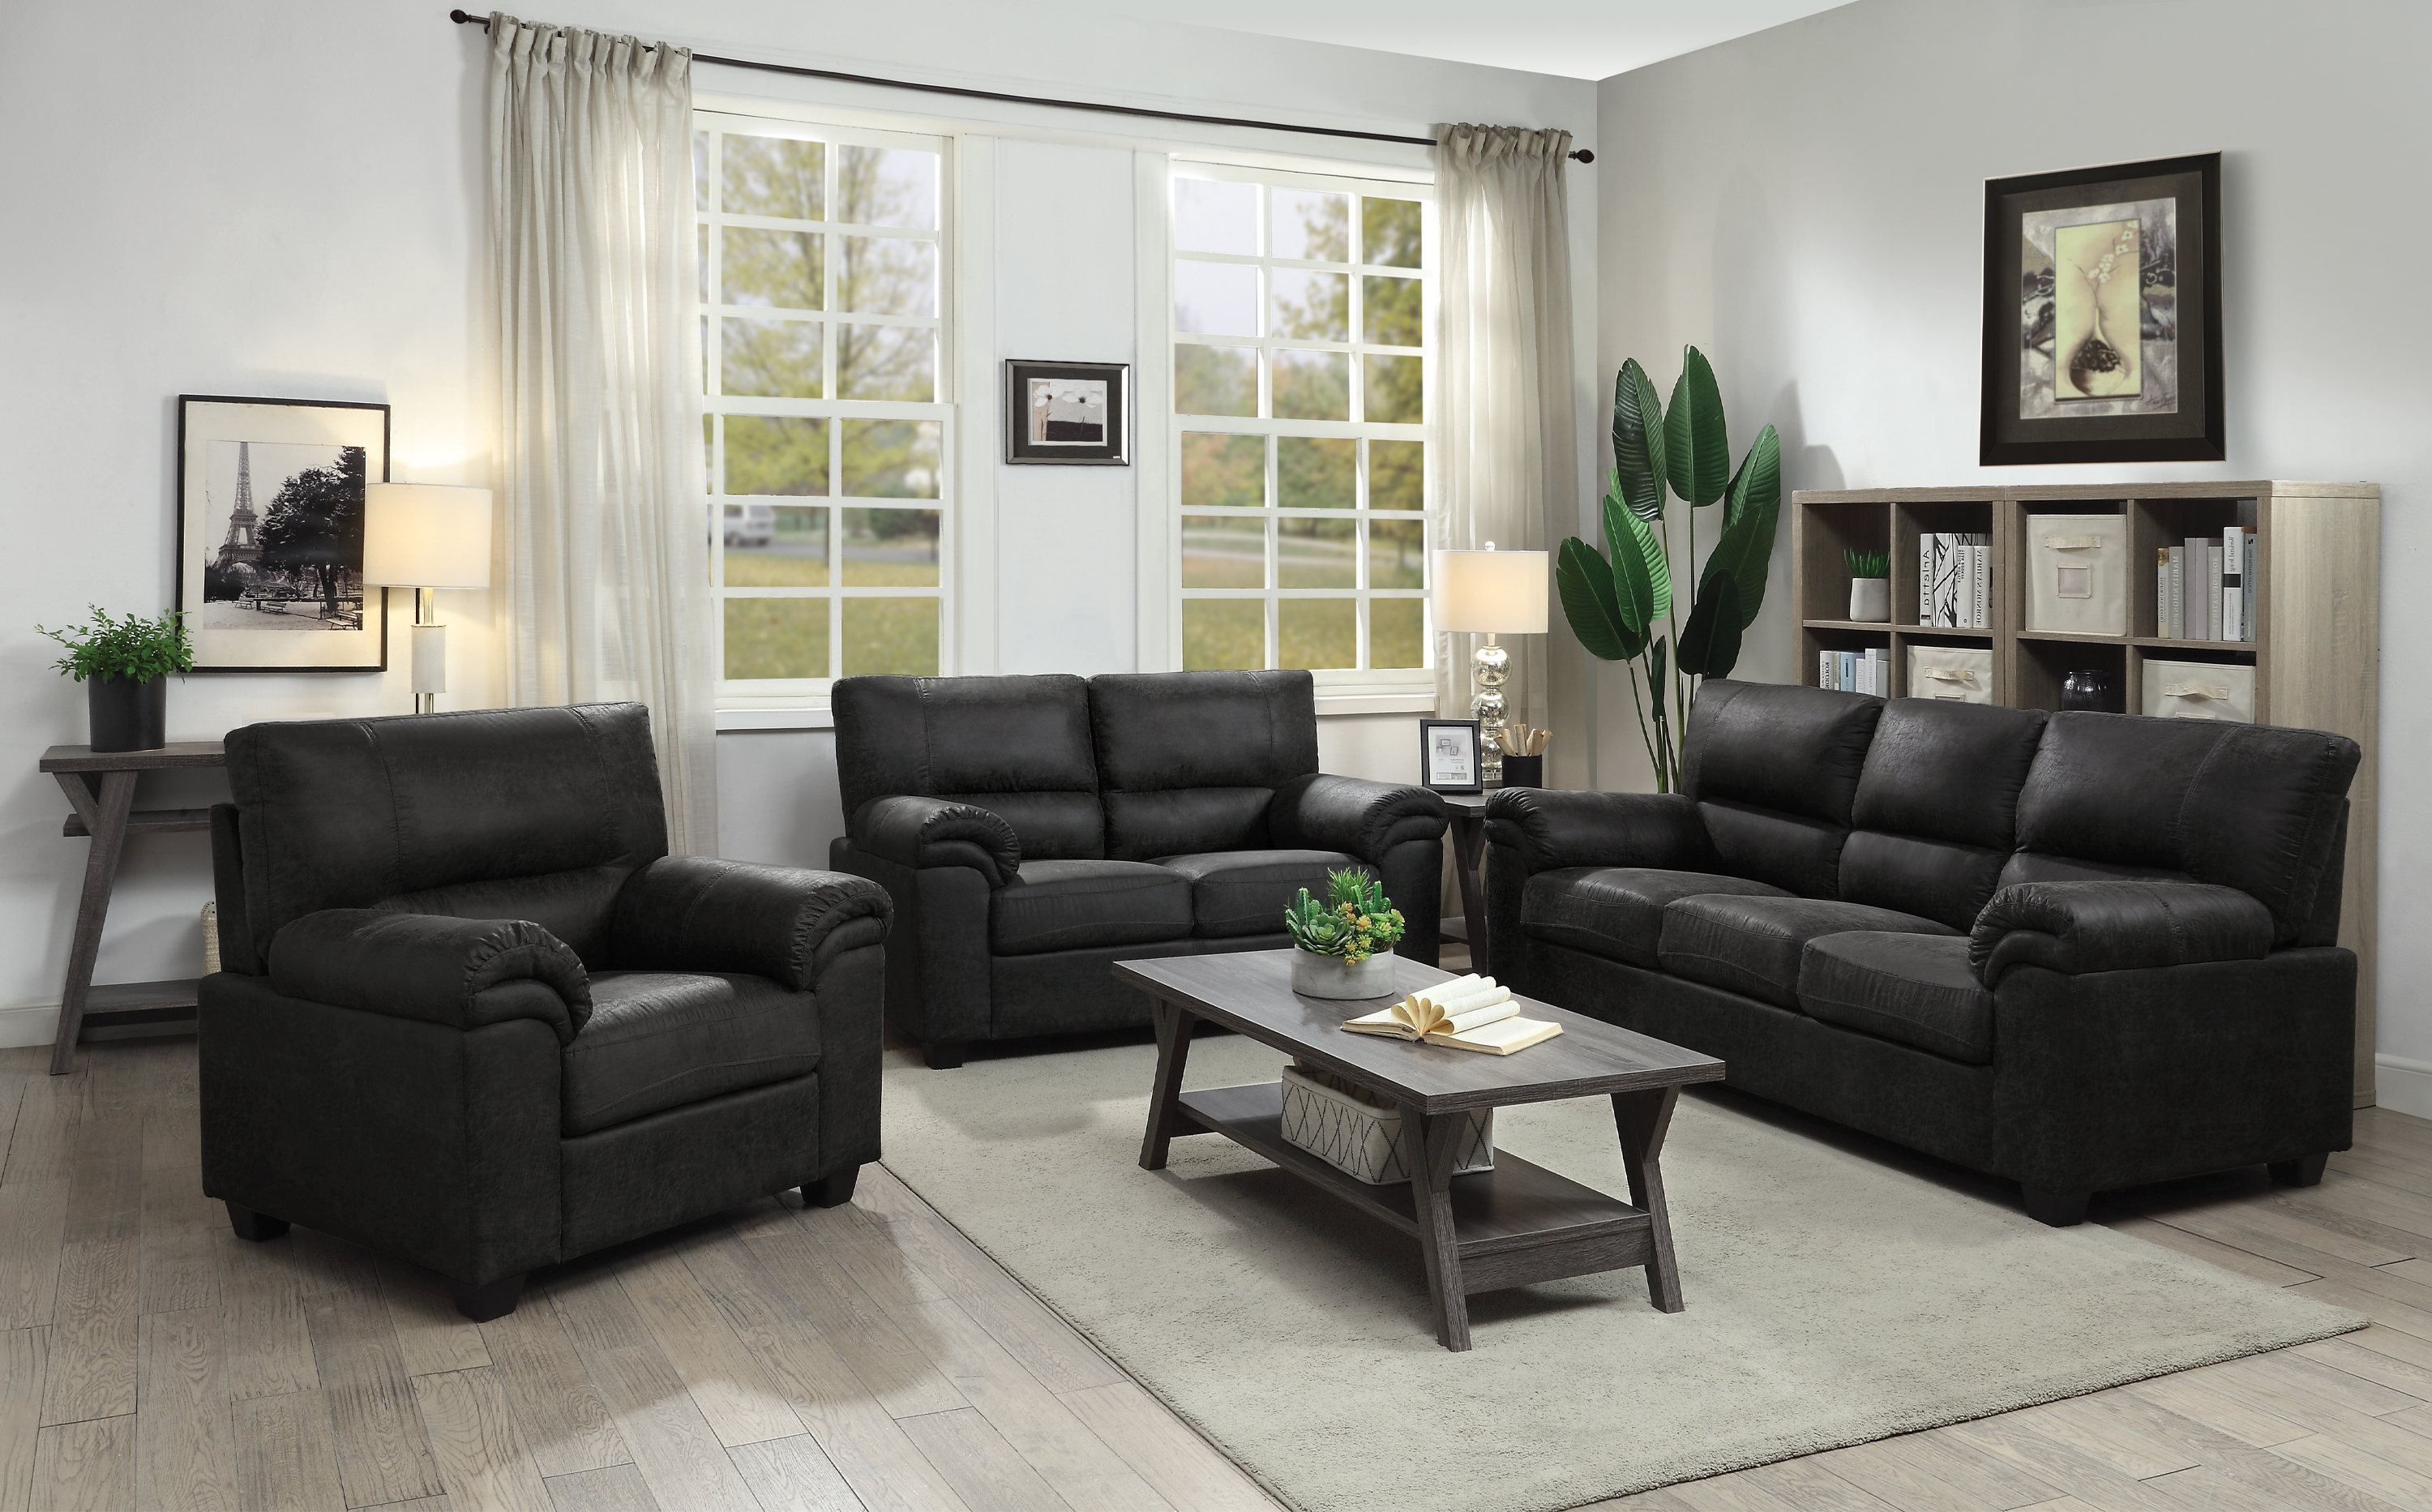 Ballard 2 Piece Living Room Set Black Coaster Fine Furniture for Cheap 2 Piece Living Room Sets